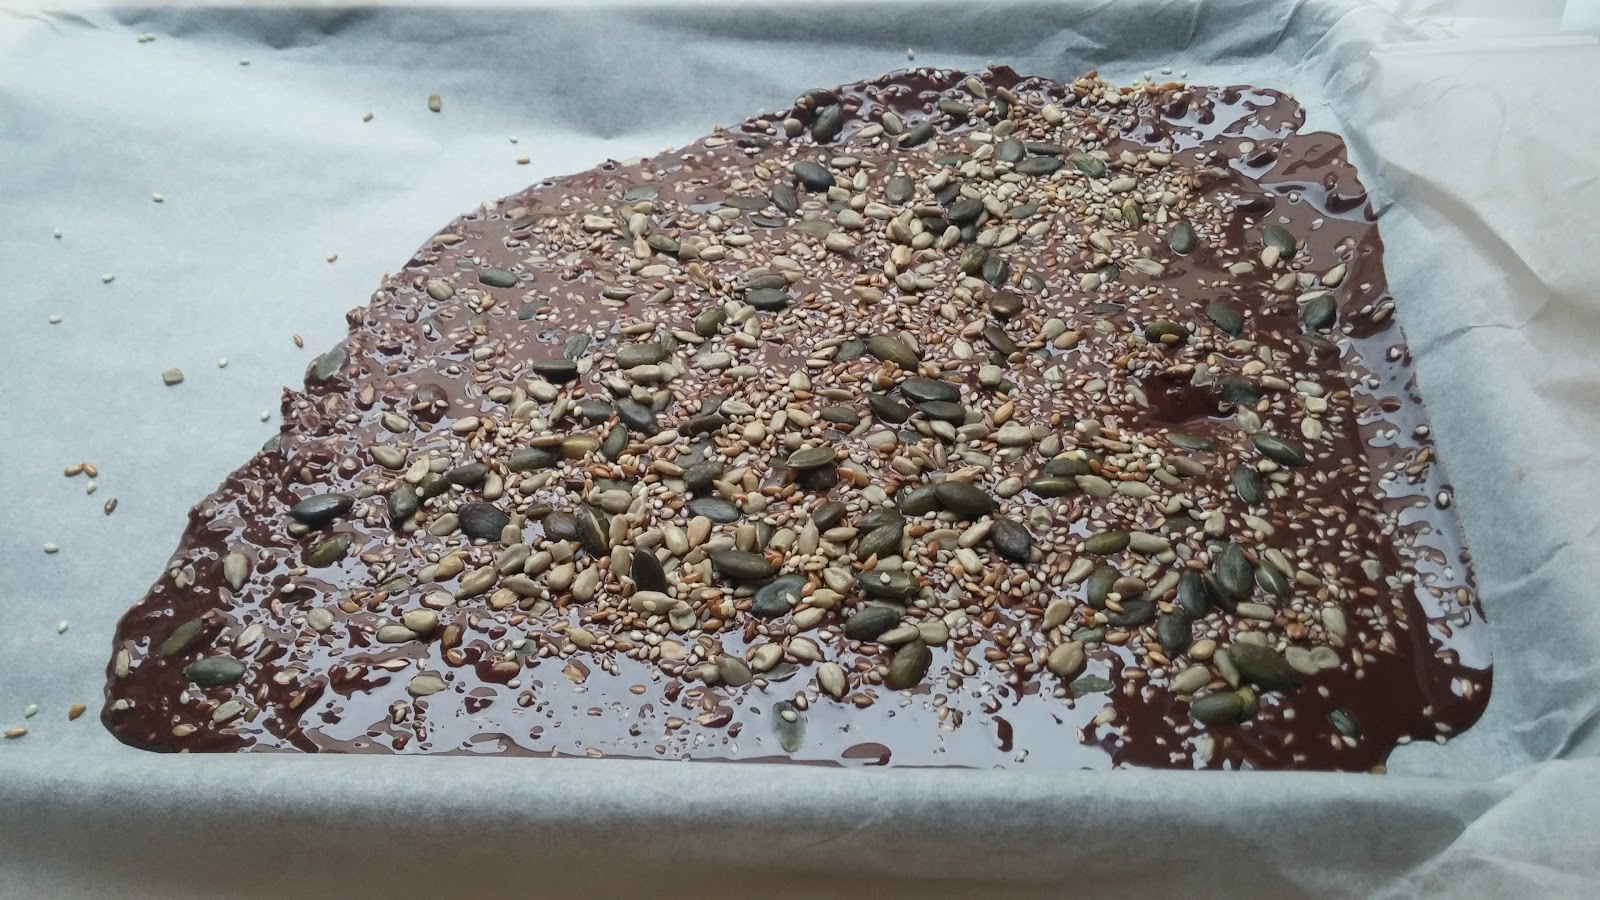 Melted dark chocolate poured out onto parchment paper topped with seeds and sea salt waiting to set